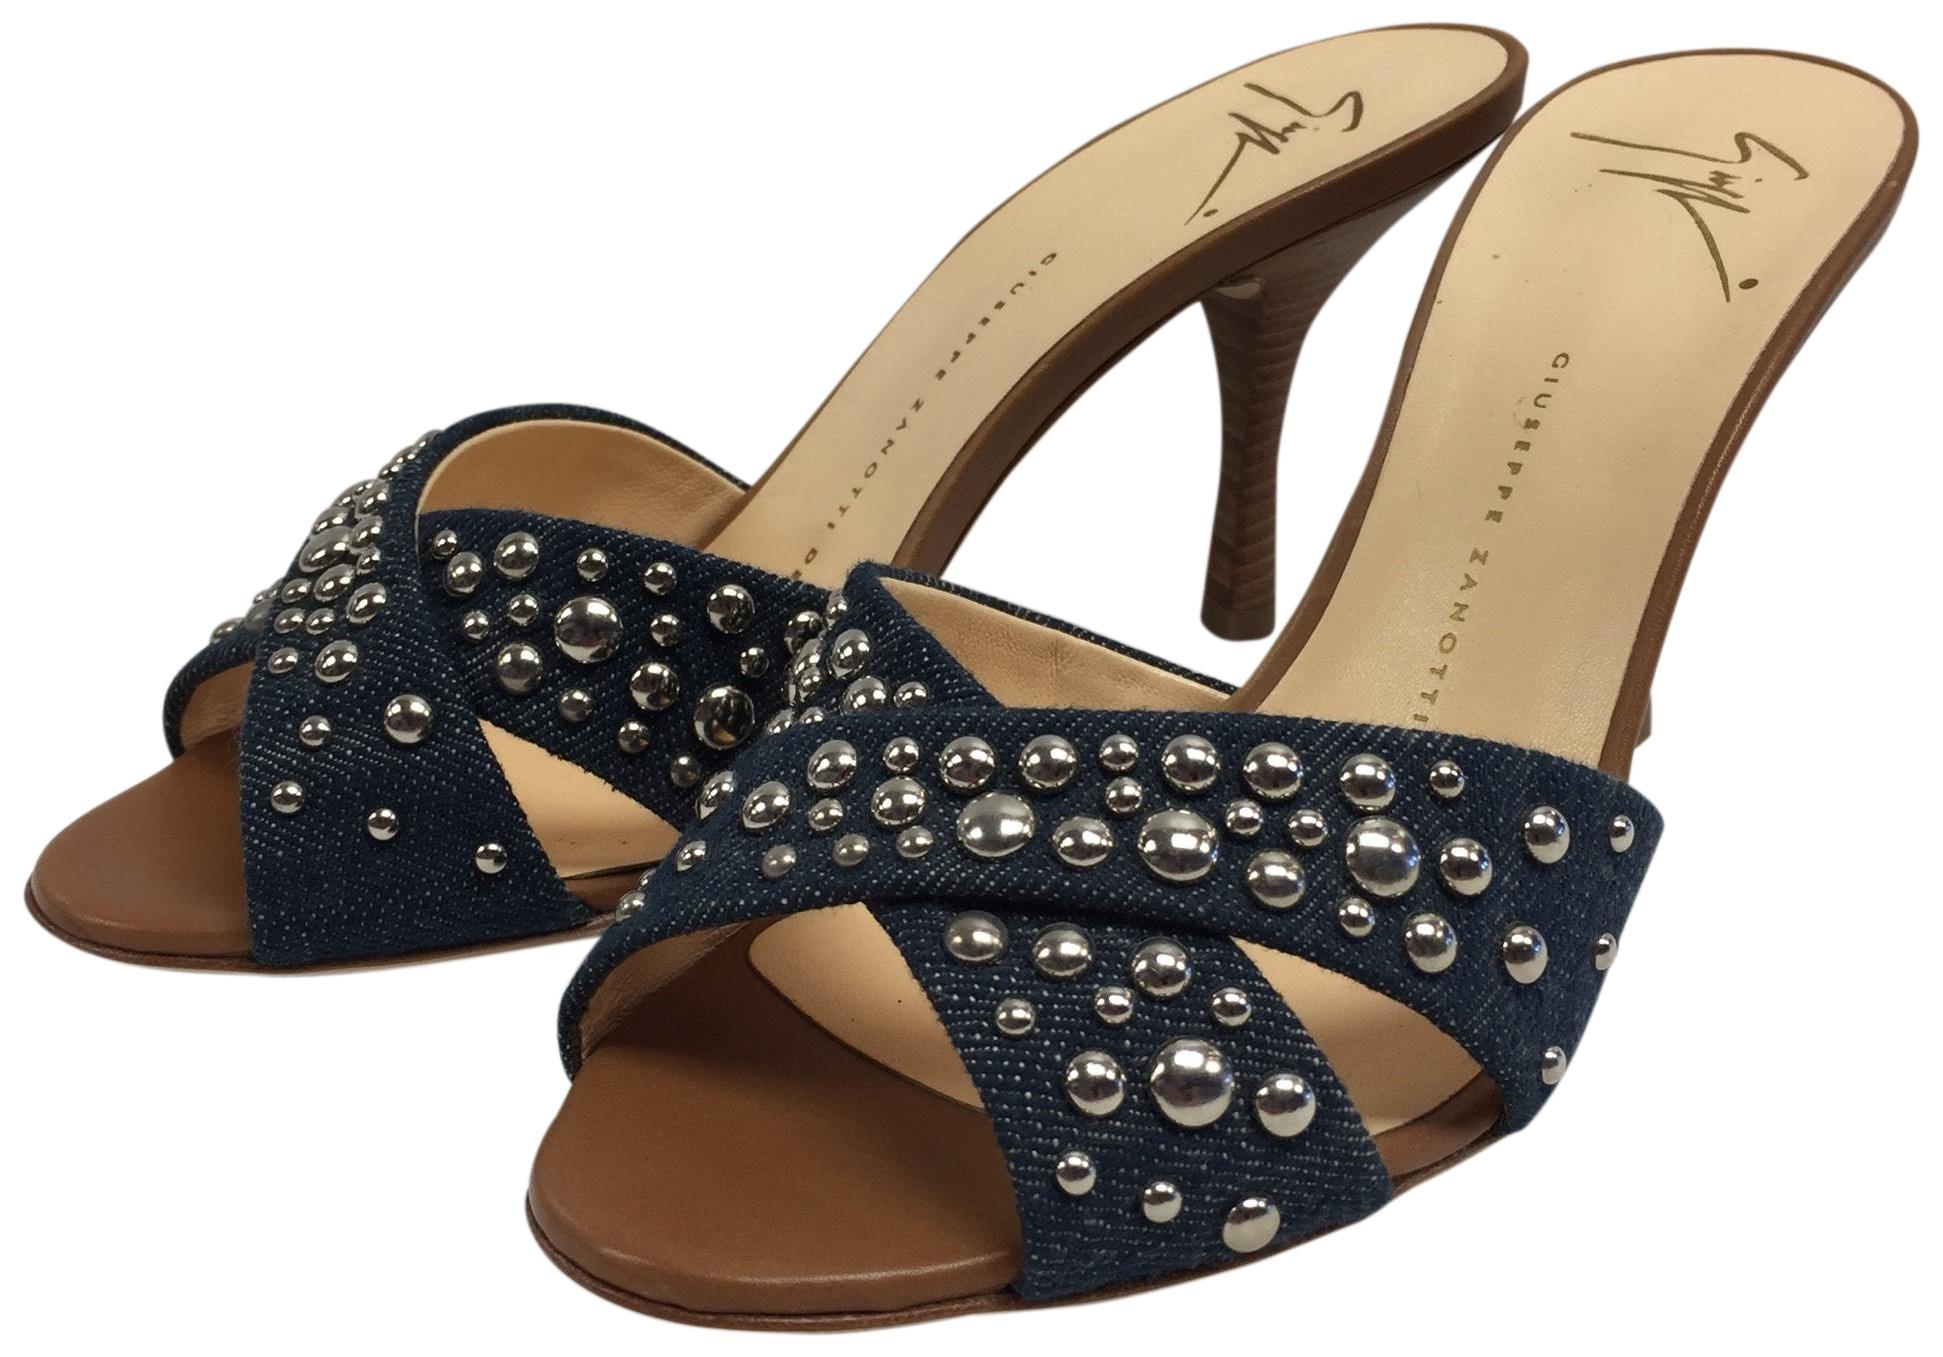 3f02b8563 Giuseppe Zanotti Blue and Tan Studded Denim High Sandals Sandals Sandals  with Wooden Heel Studded Denim Mules Slides Size EU 36.5 (Approx.